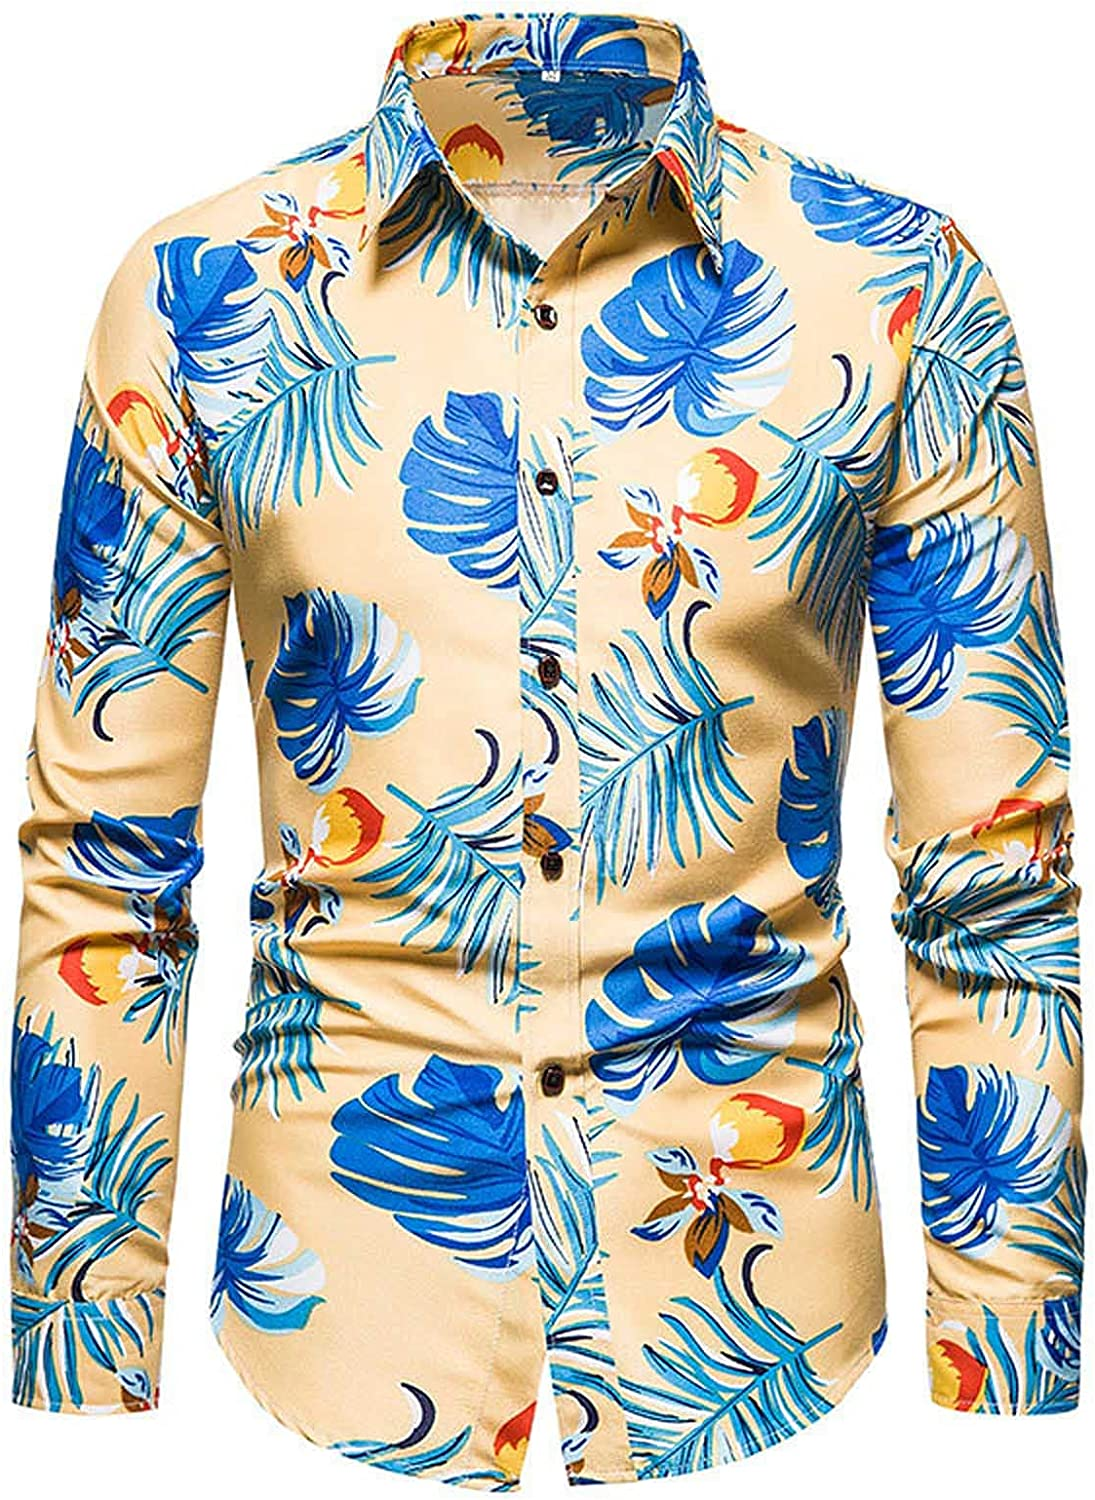 Mens Buttons Up Shirts Lapel Floral Printed Dress Shirts Long Sleeve Casual Flower Printed Shirts